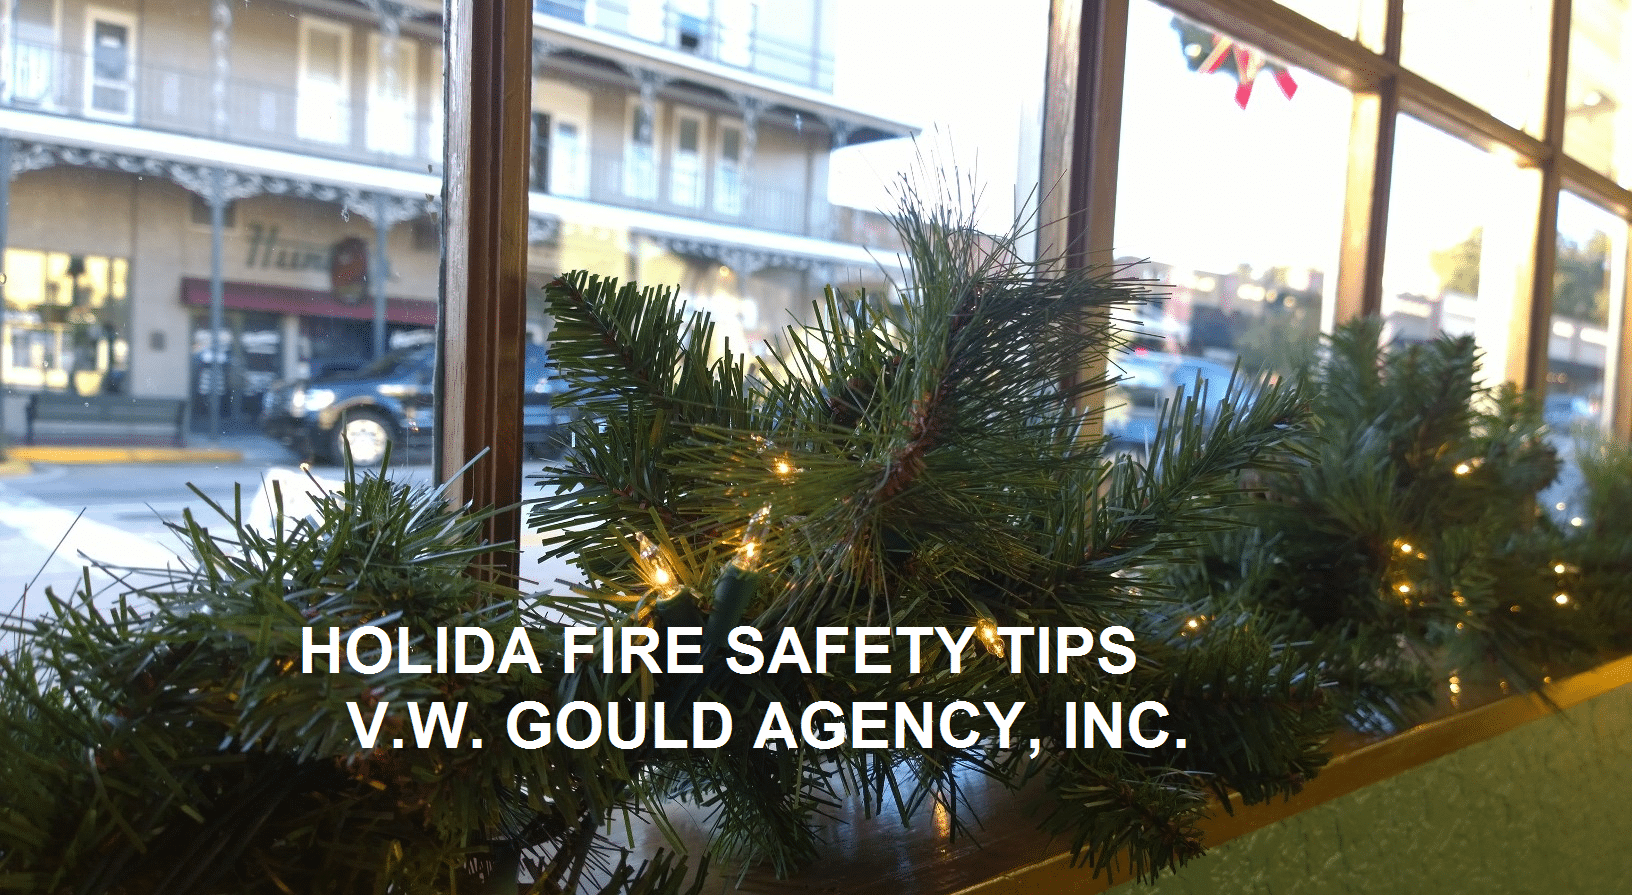 HOLIDAY FIRE SAFETY TIPS FIRE INSURANCE